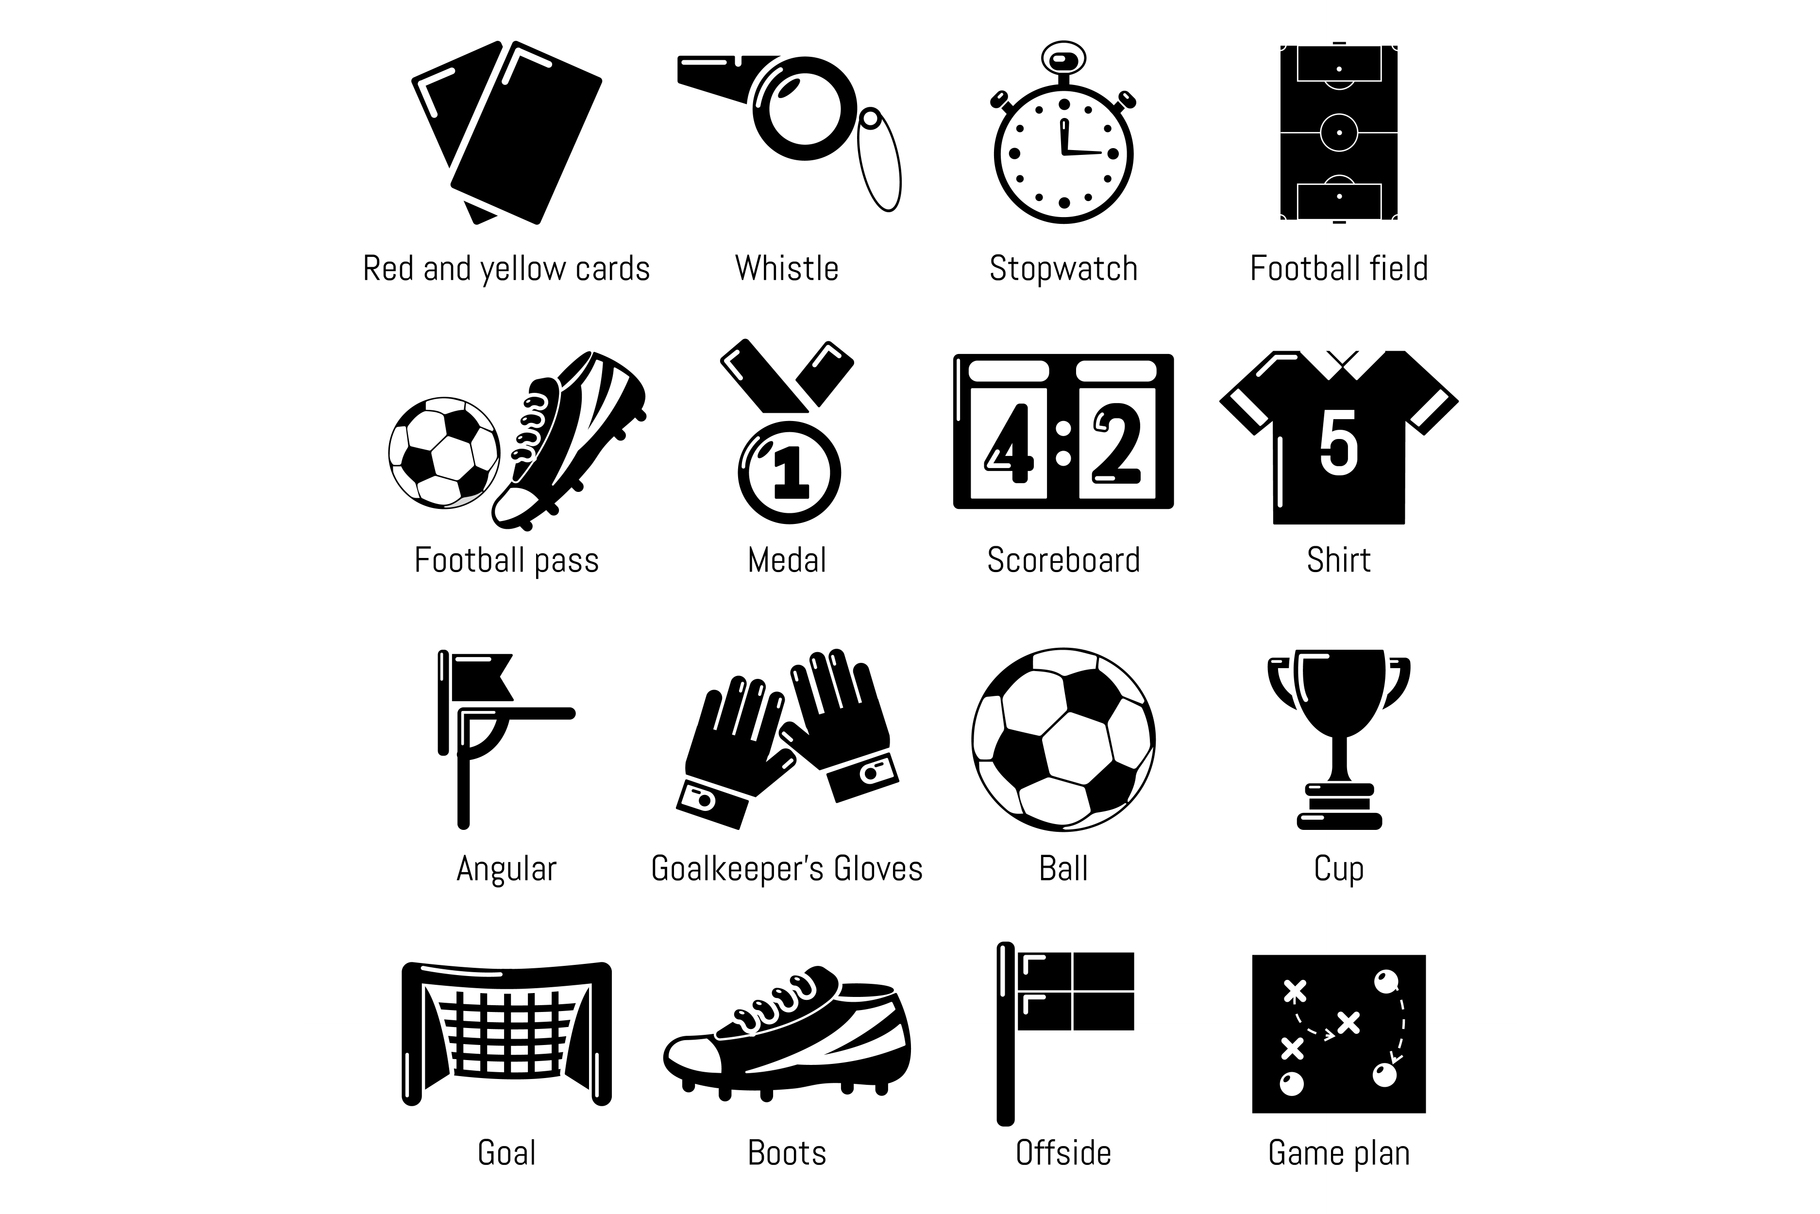 Soccer football icons set, simple style example image 1